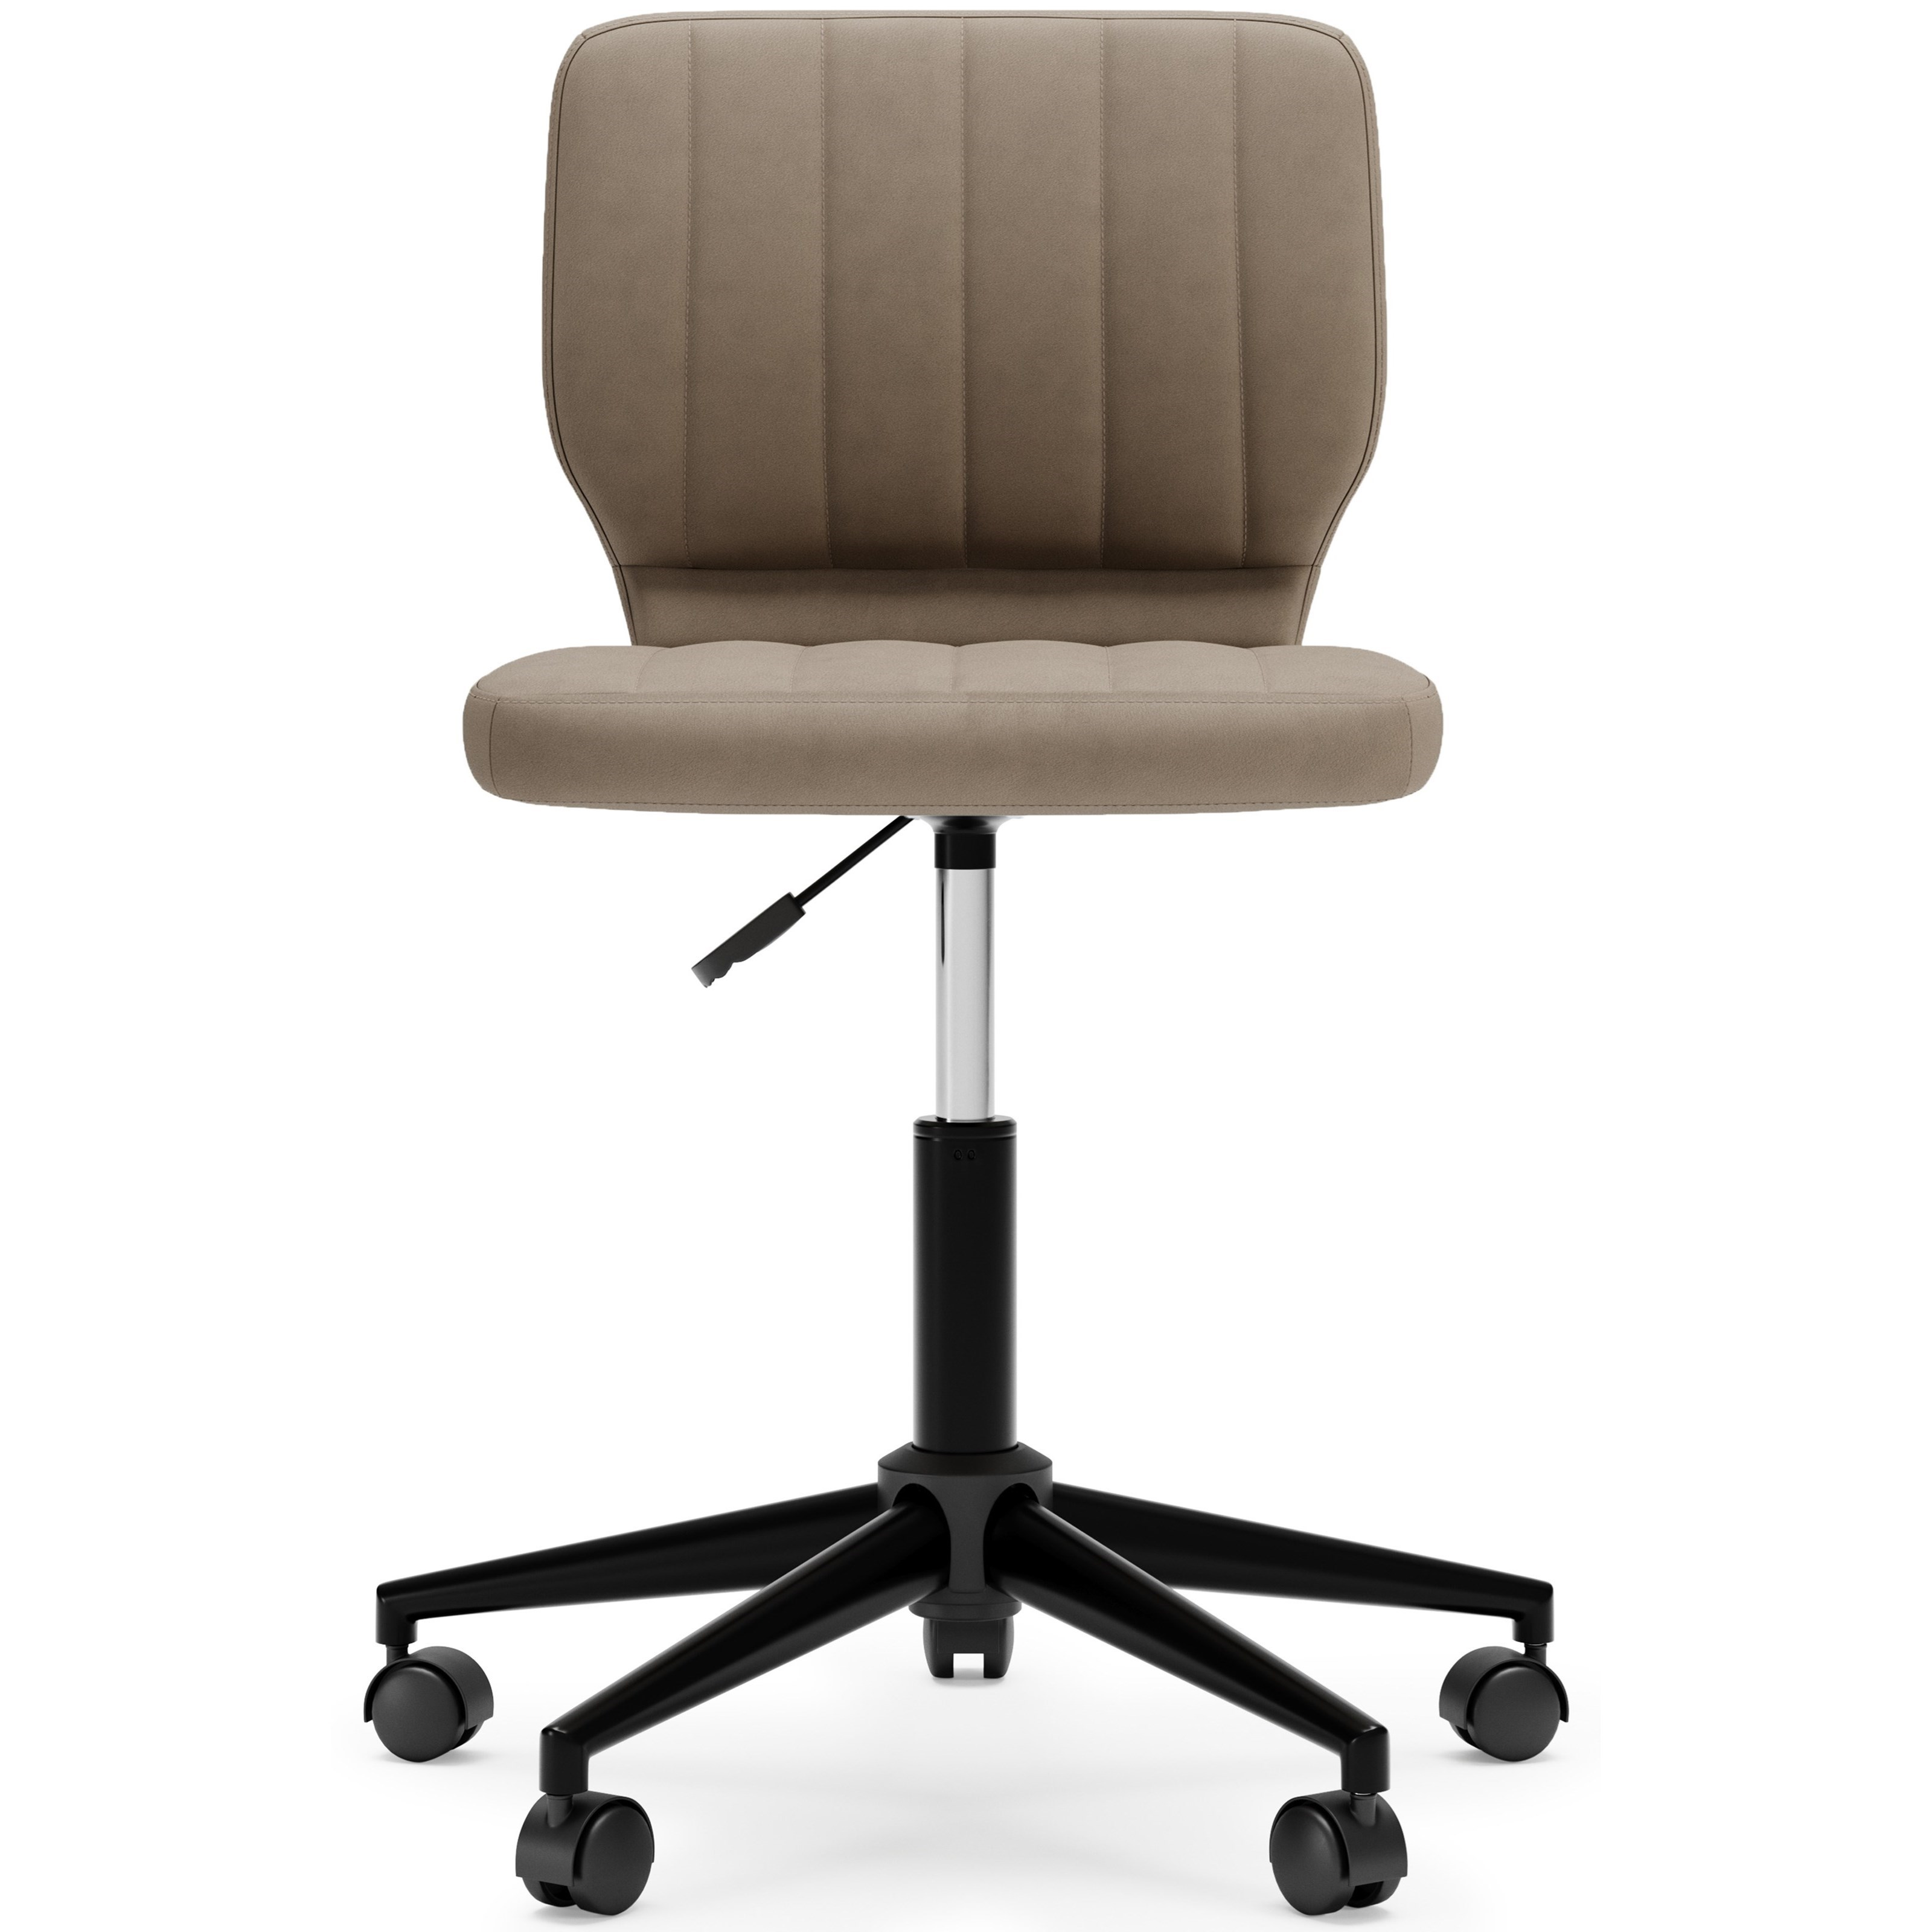 Beauenali Home Office Desk Chair by Signature Design by Ashley at Furniture Barn